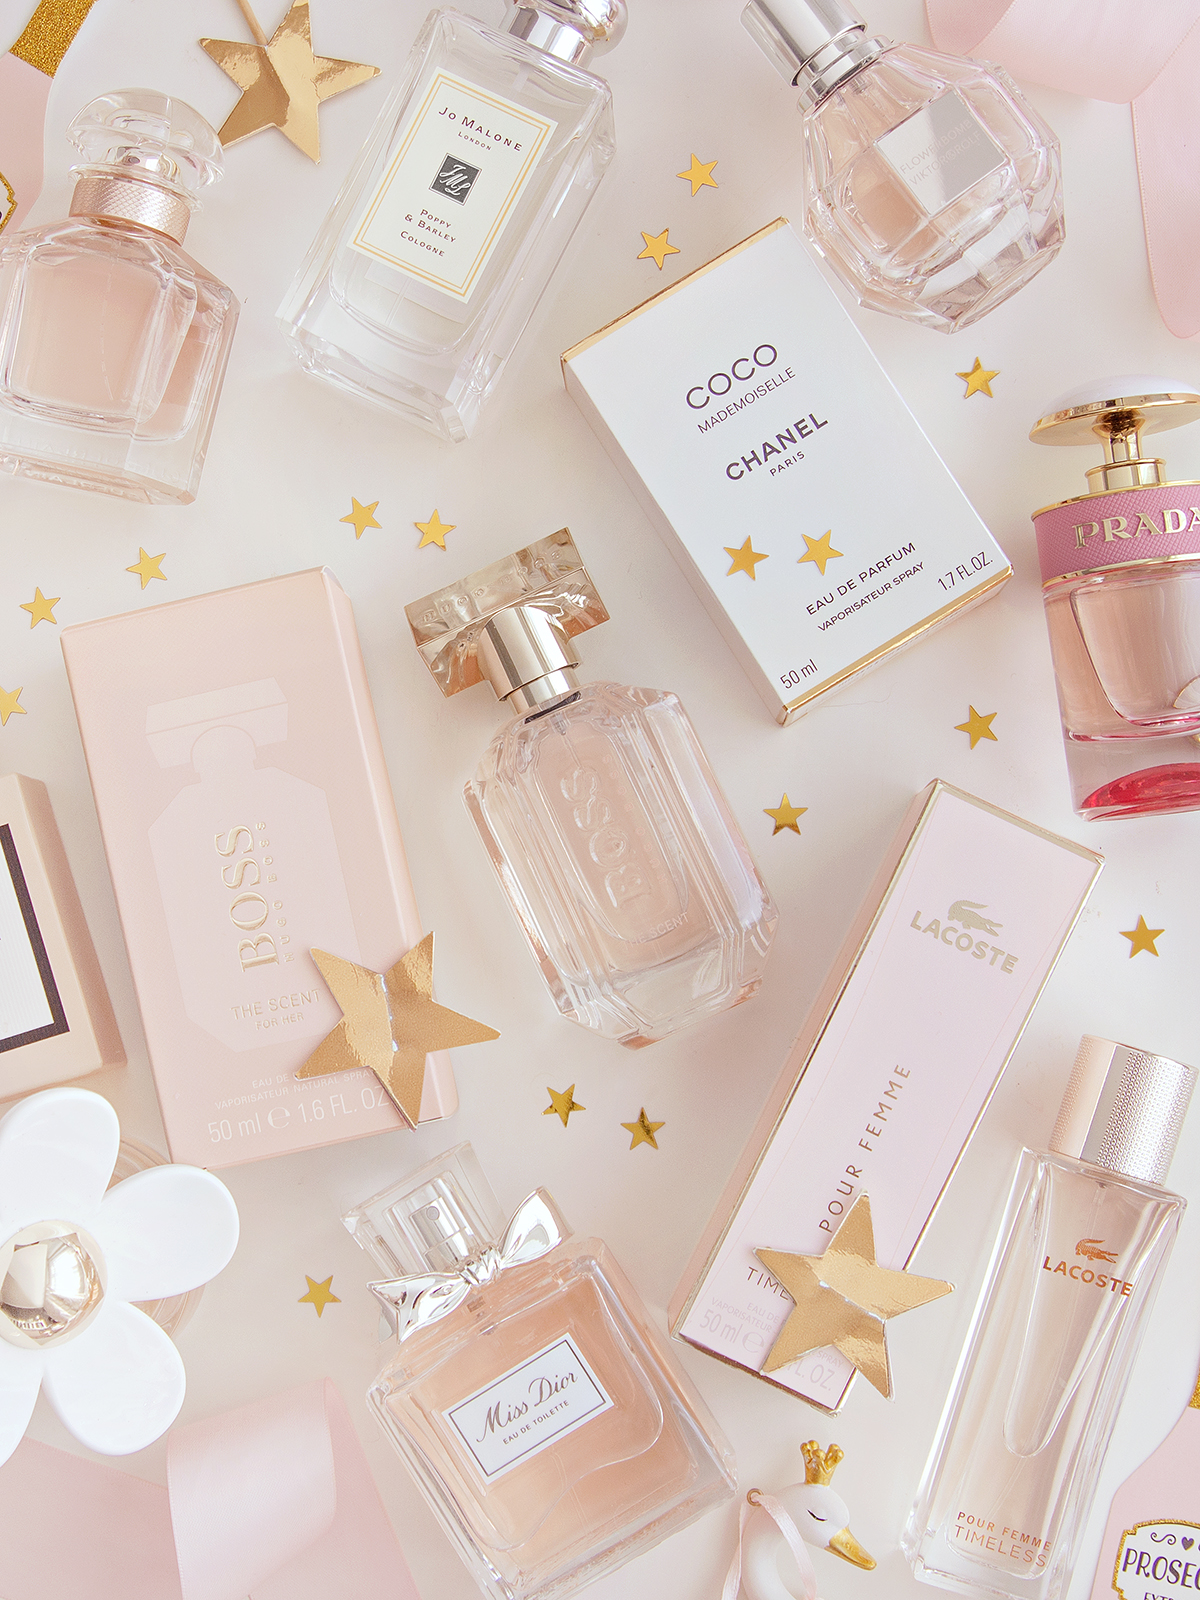 A selection of perfumes including Hugo Boss, Lacoste, Jo Malone, Guerlain, Dior